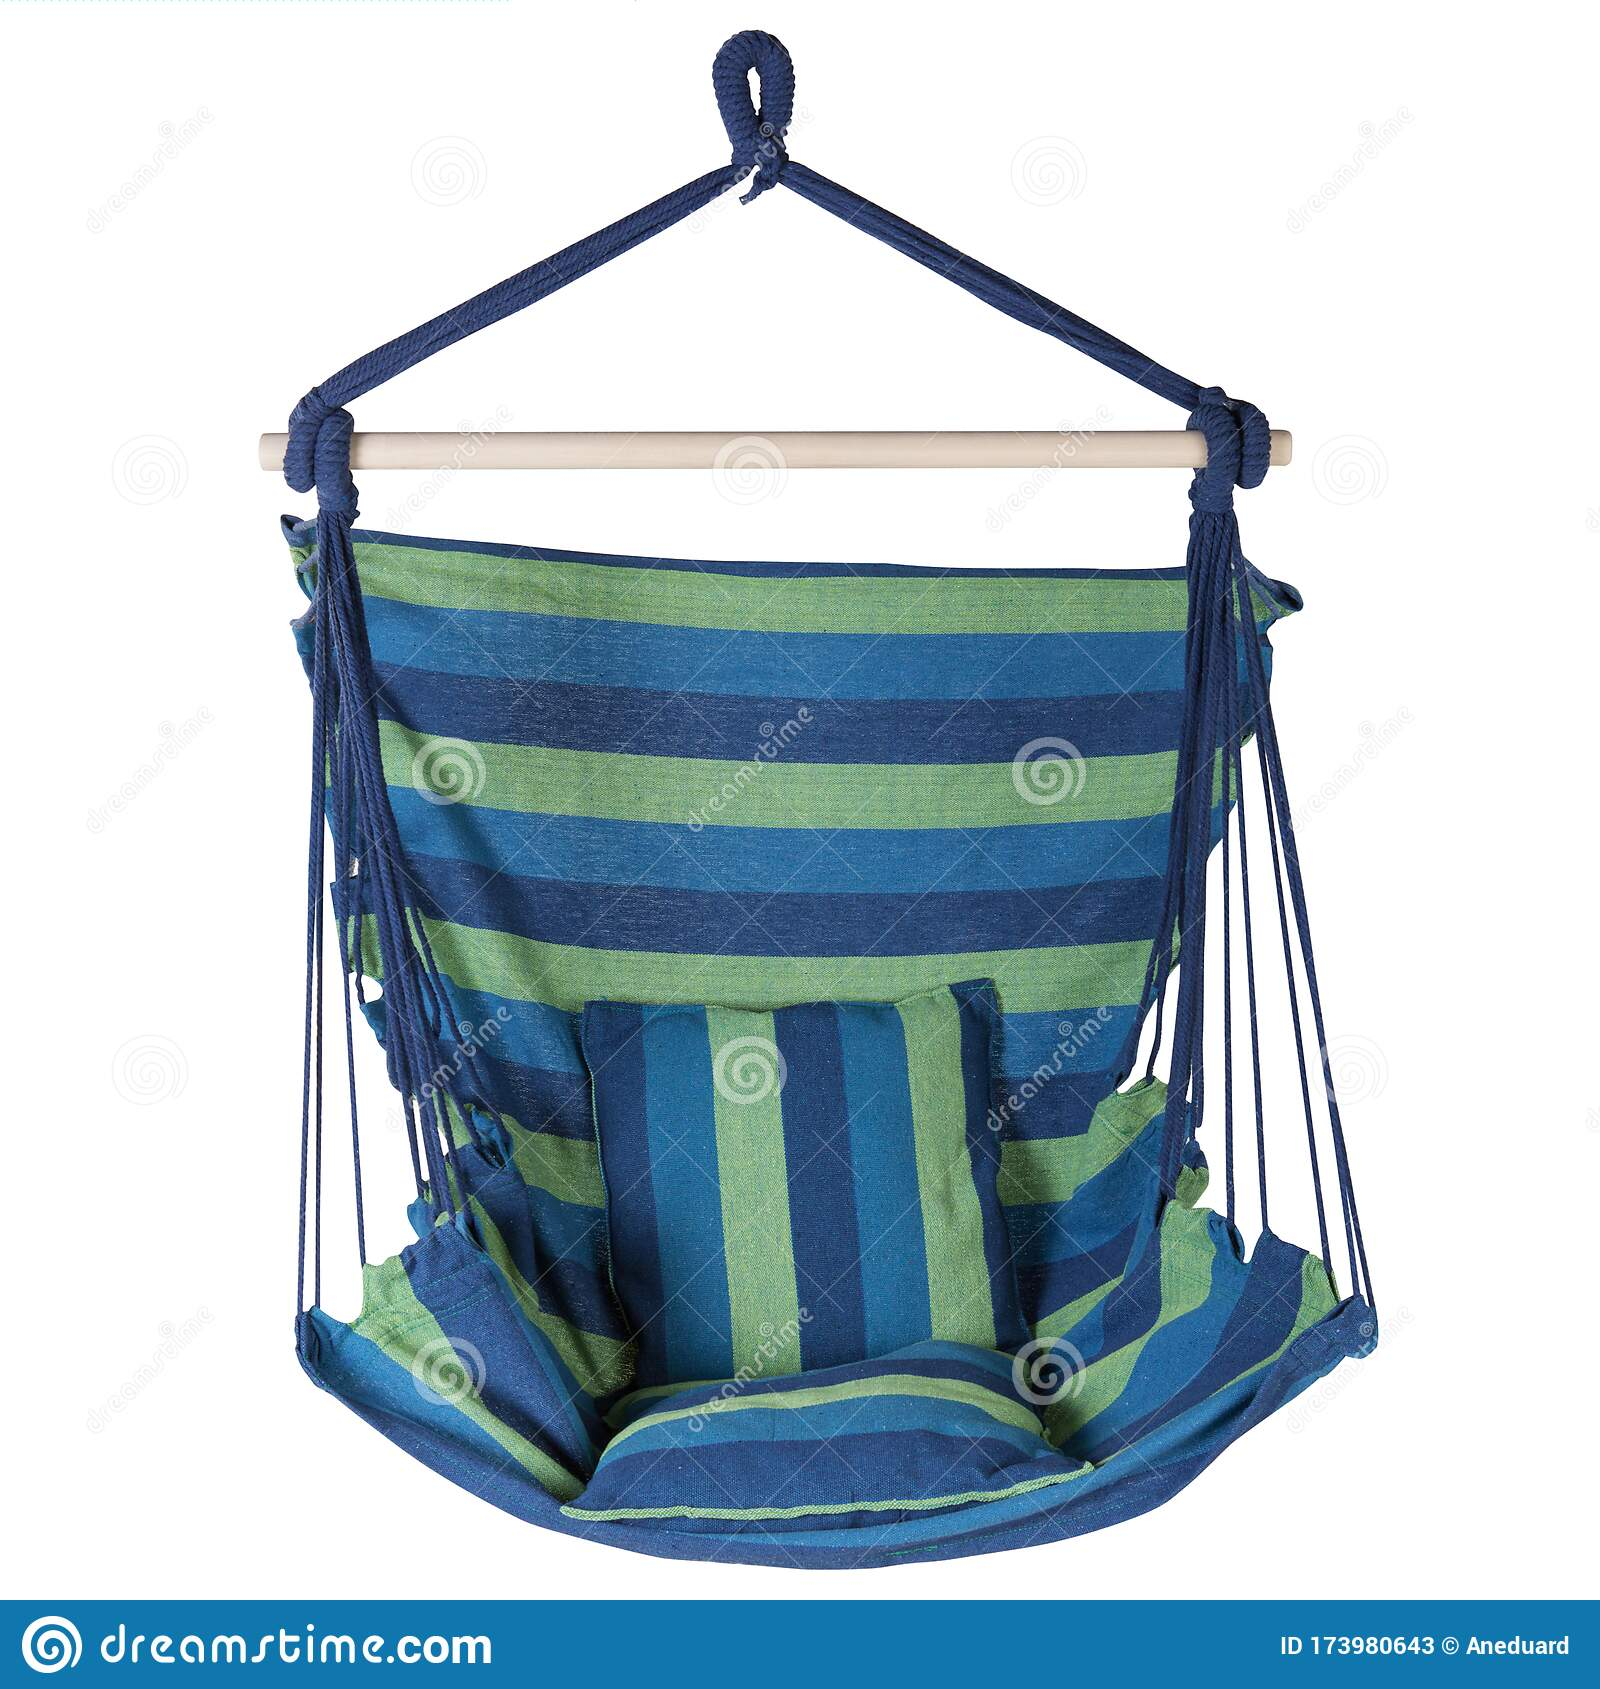 Fabric Hammock Chair With Blue And Green Stripes On A White